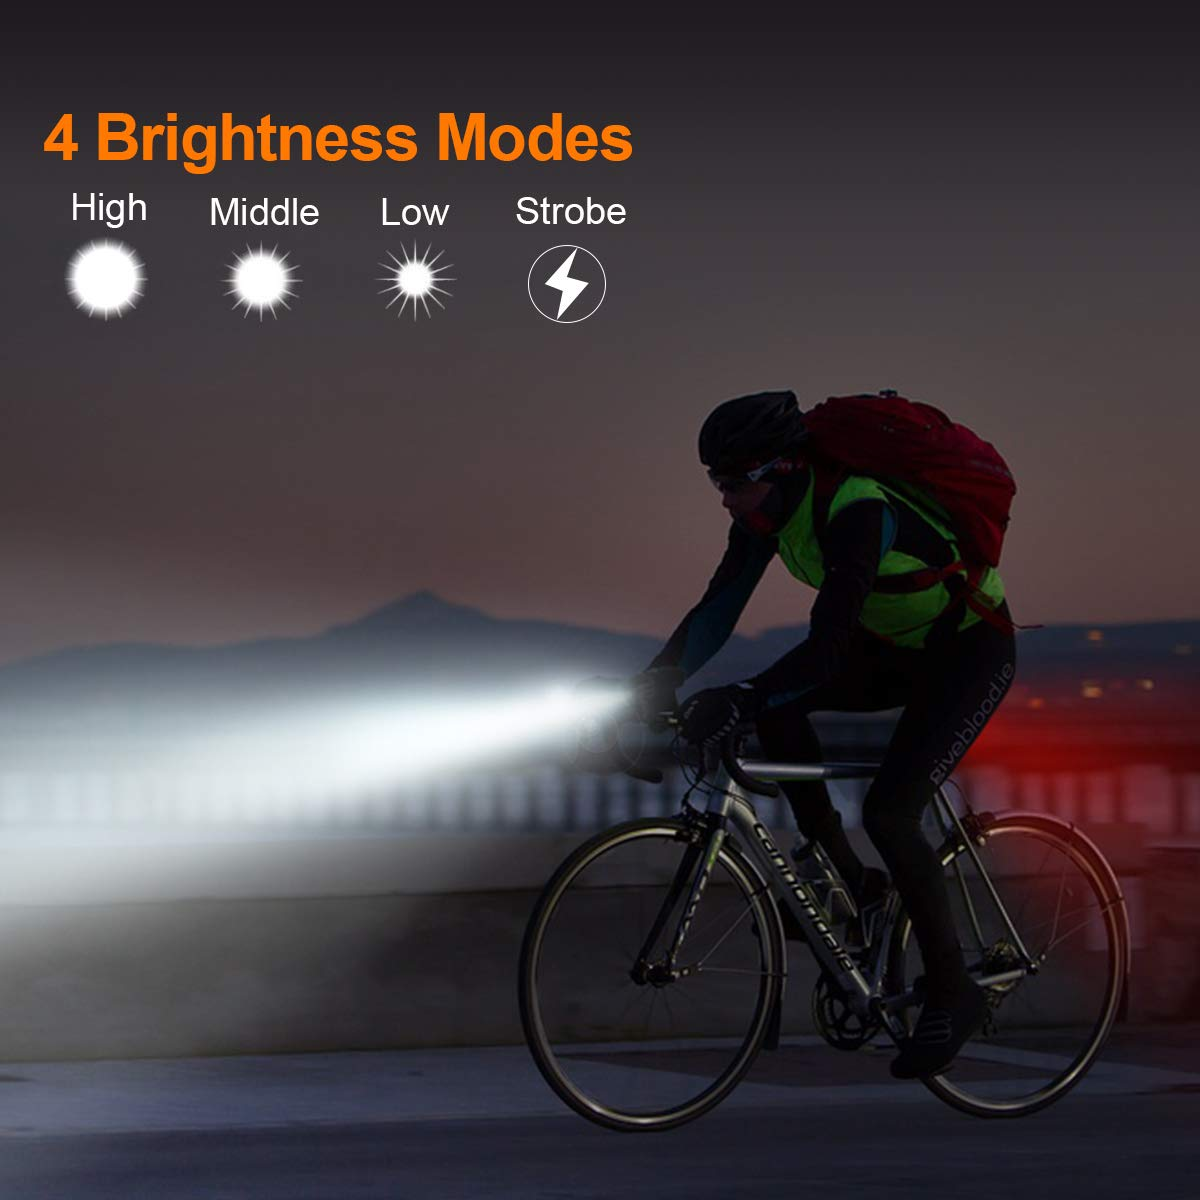 Bonnevie USB Rechargeable Bike Light Set,1500mA Powerful Waterproof Mountain Bicycle Headlight and Taillight Set Super Bright Front Light and Rear Light for Cycling Safety by Bonnevie (Image #8)